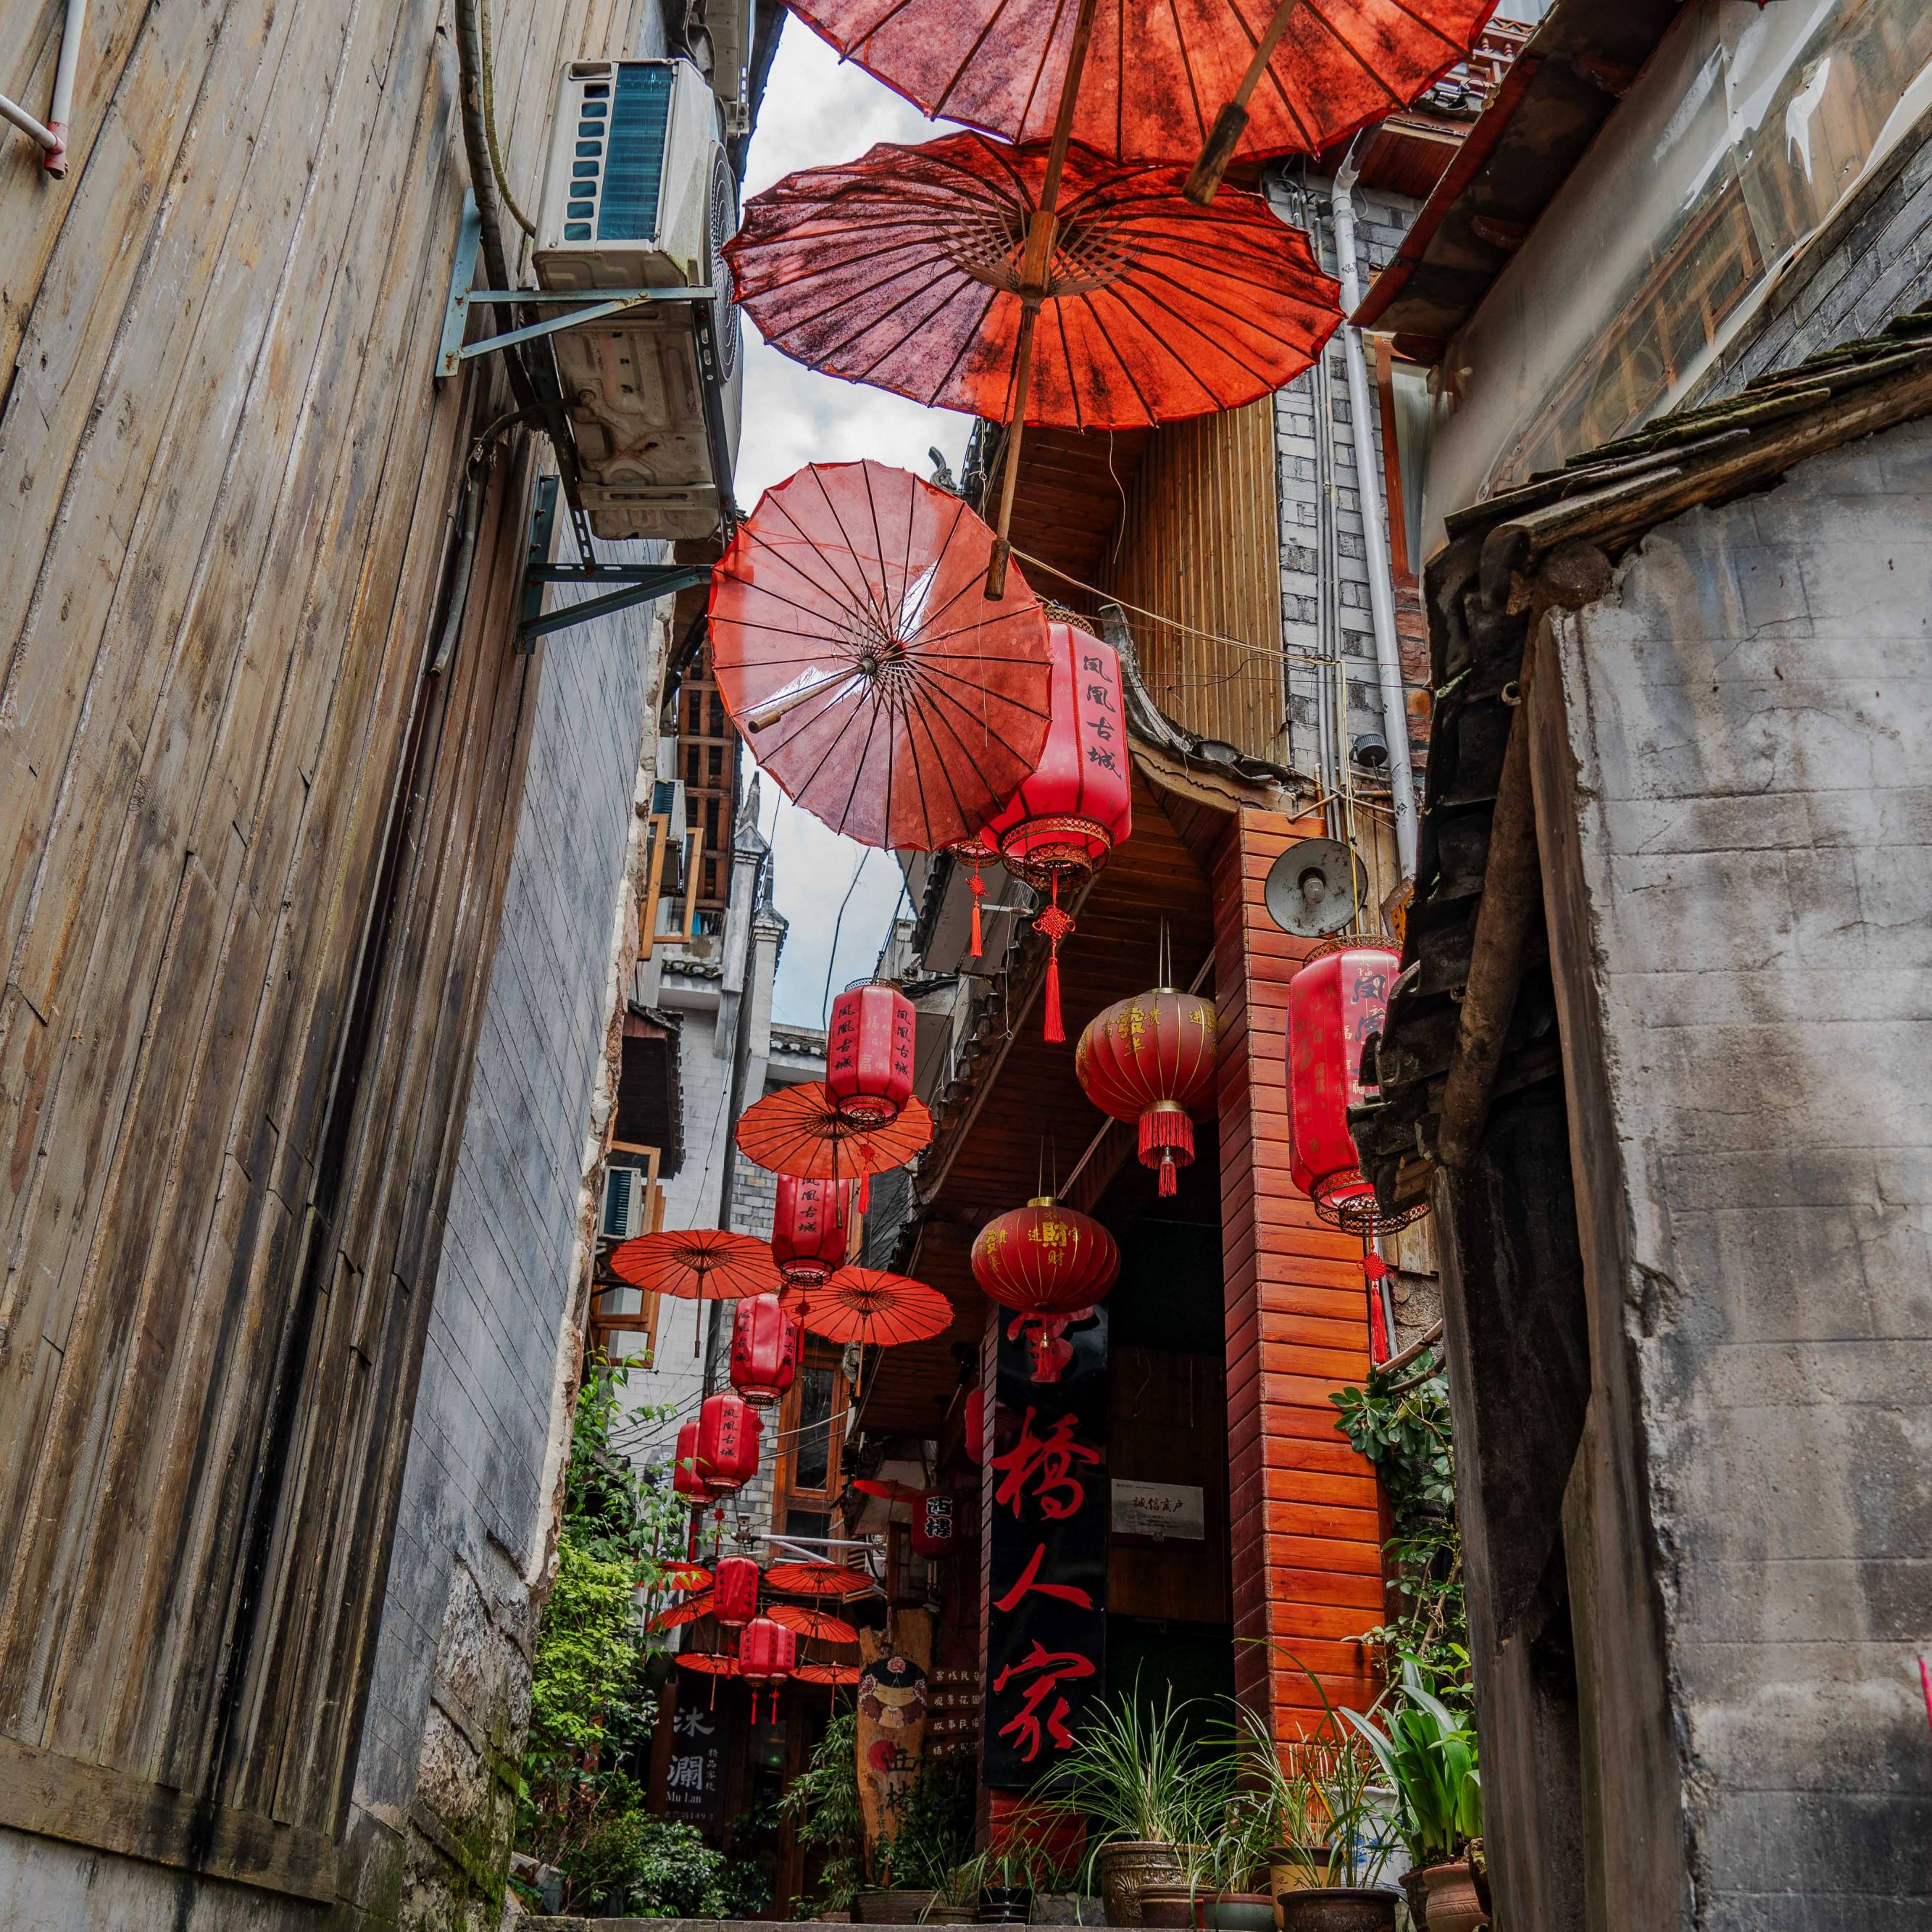 Charming Alley in Fenghuang